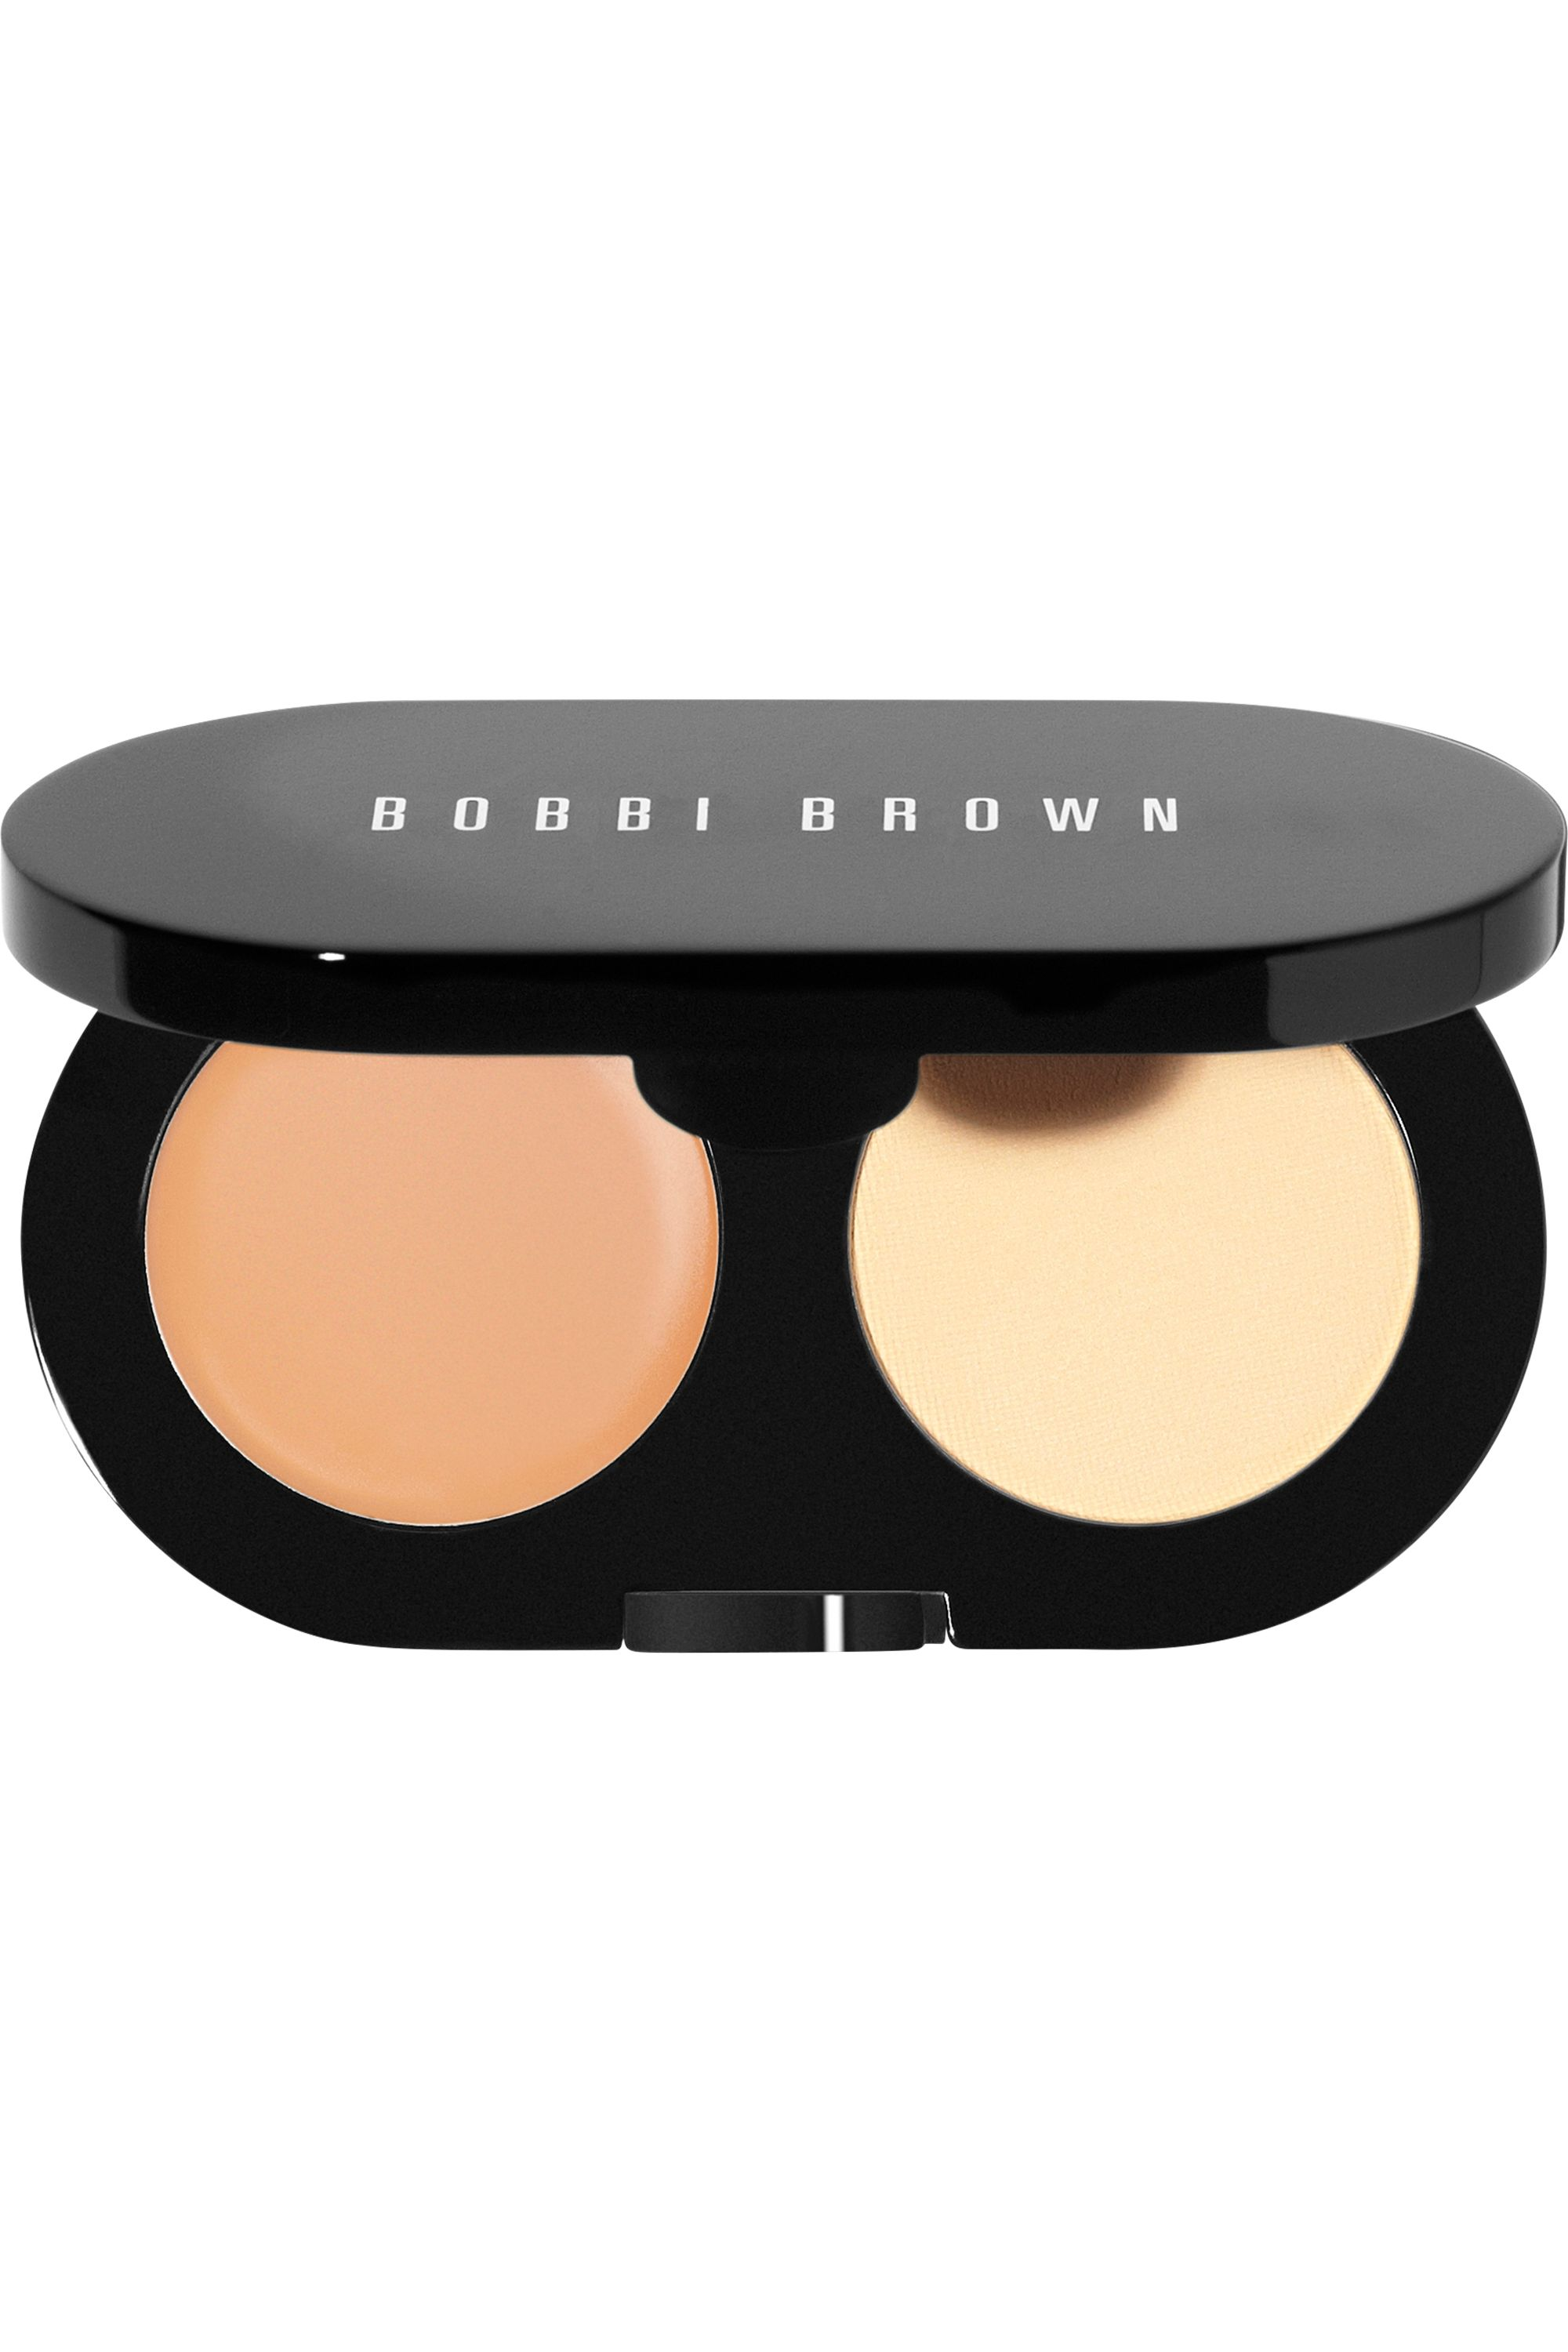 Blissim : Bobbi Brown - Kit anti-cernes Creamy Concealer Kit - Beige